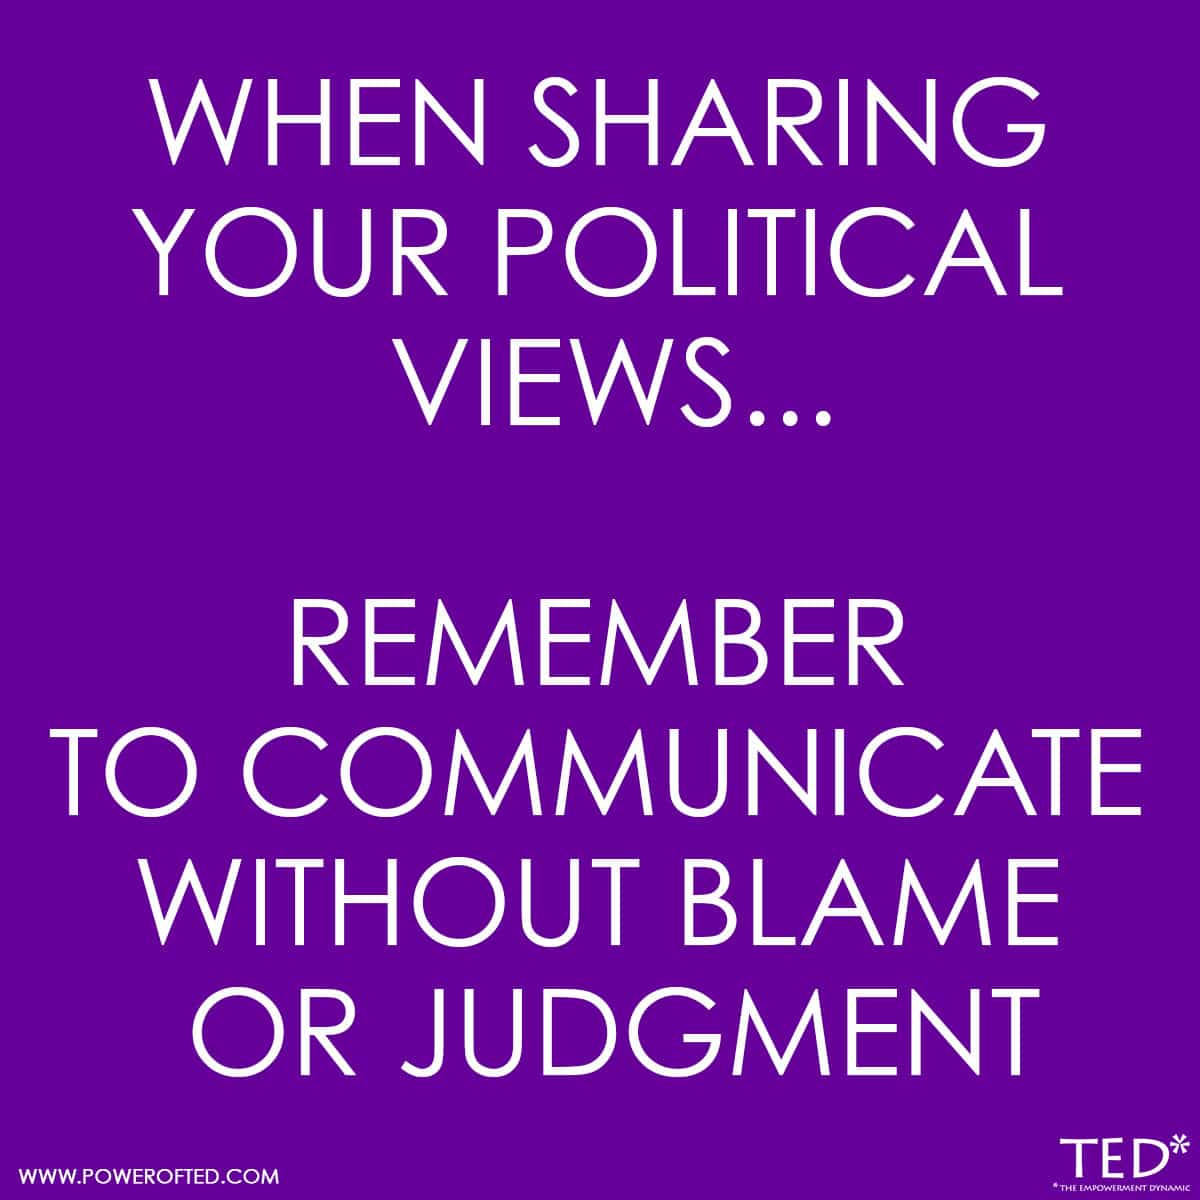 When sharing your political views, remember to communicate without blame or judgment